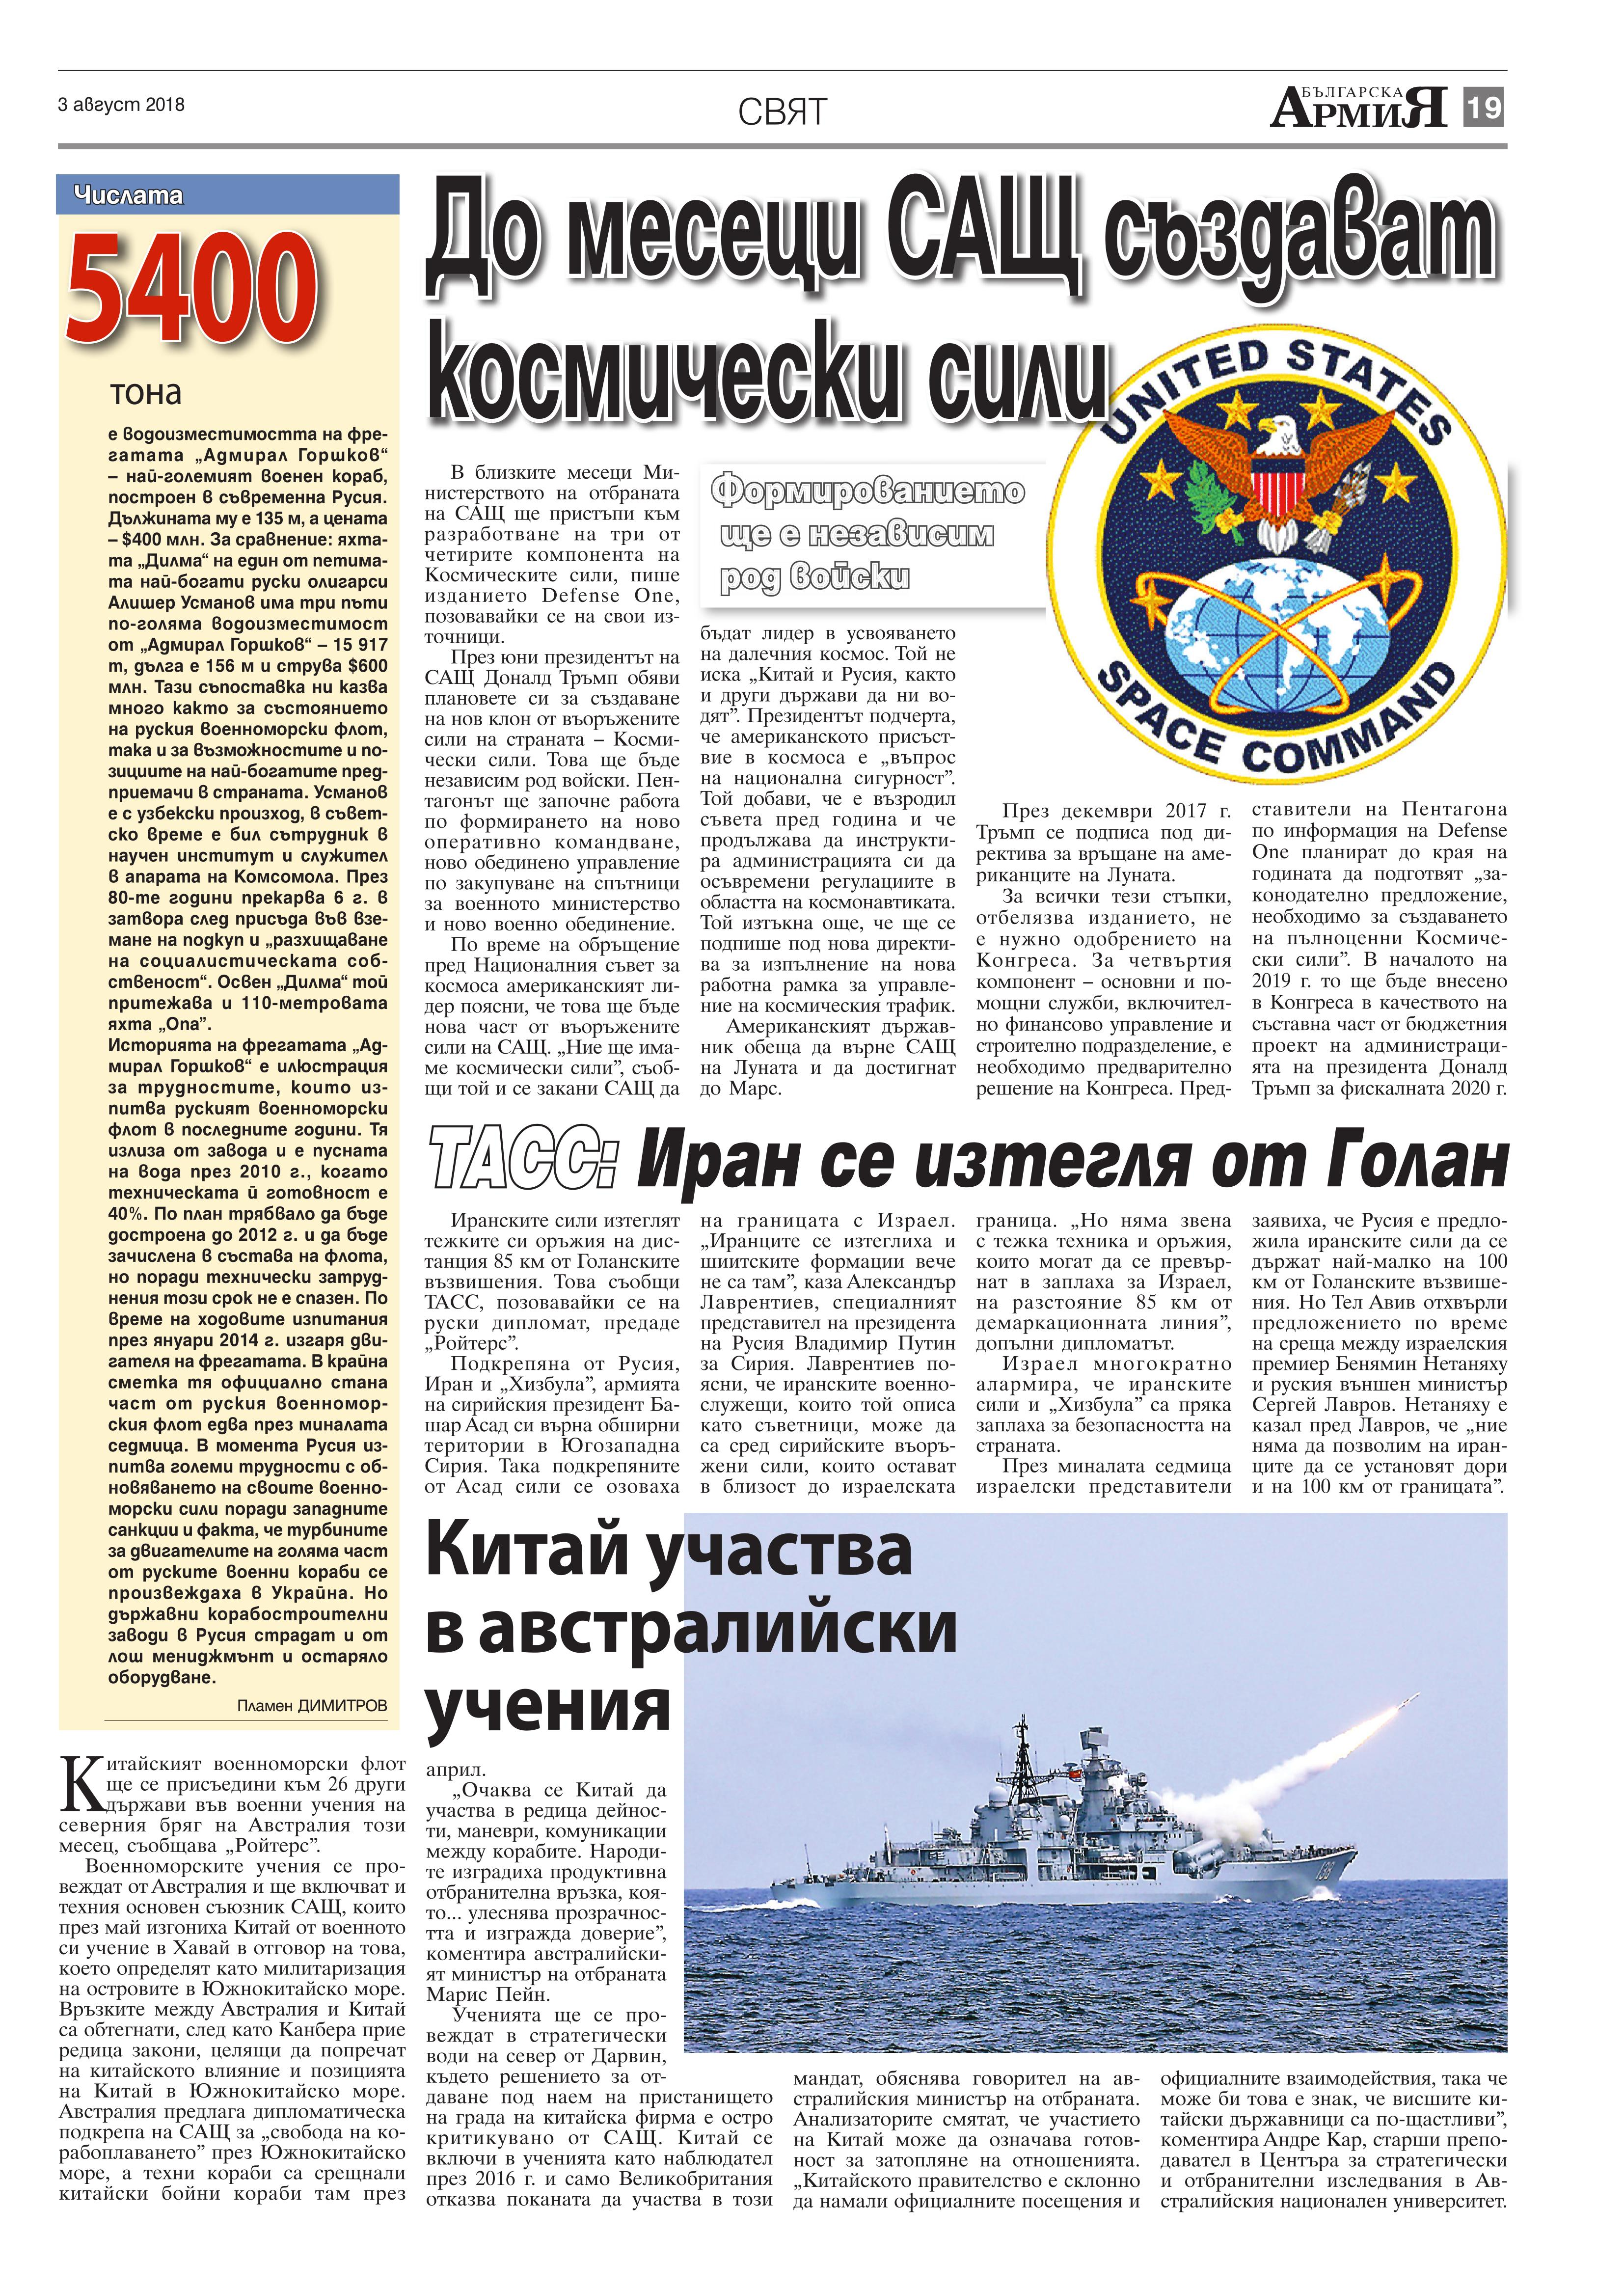 https://armymedia.bg/wp-content/uploads/2015/06/19.page1_-60.jpg